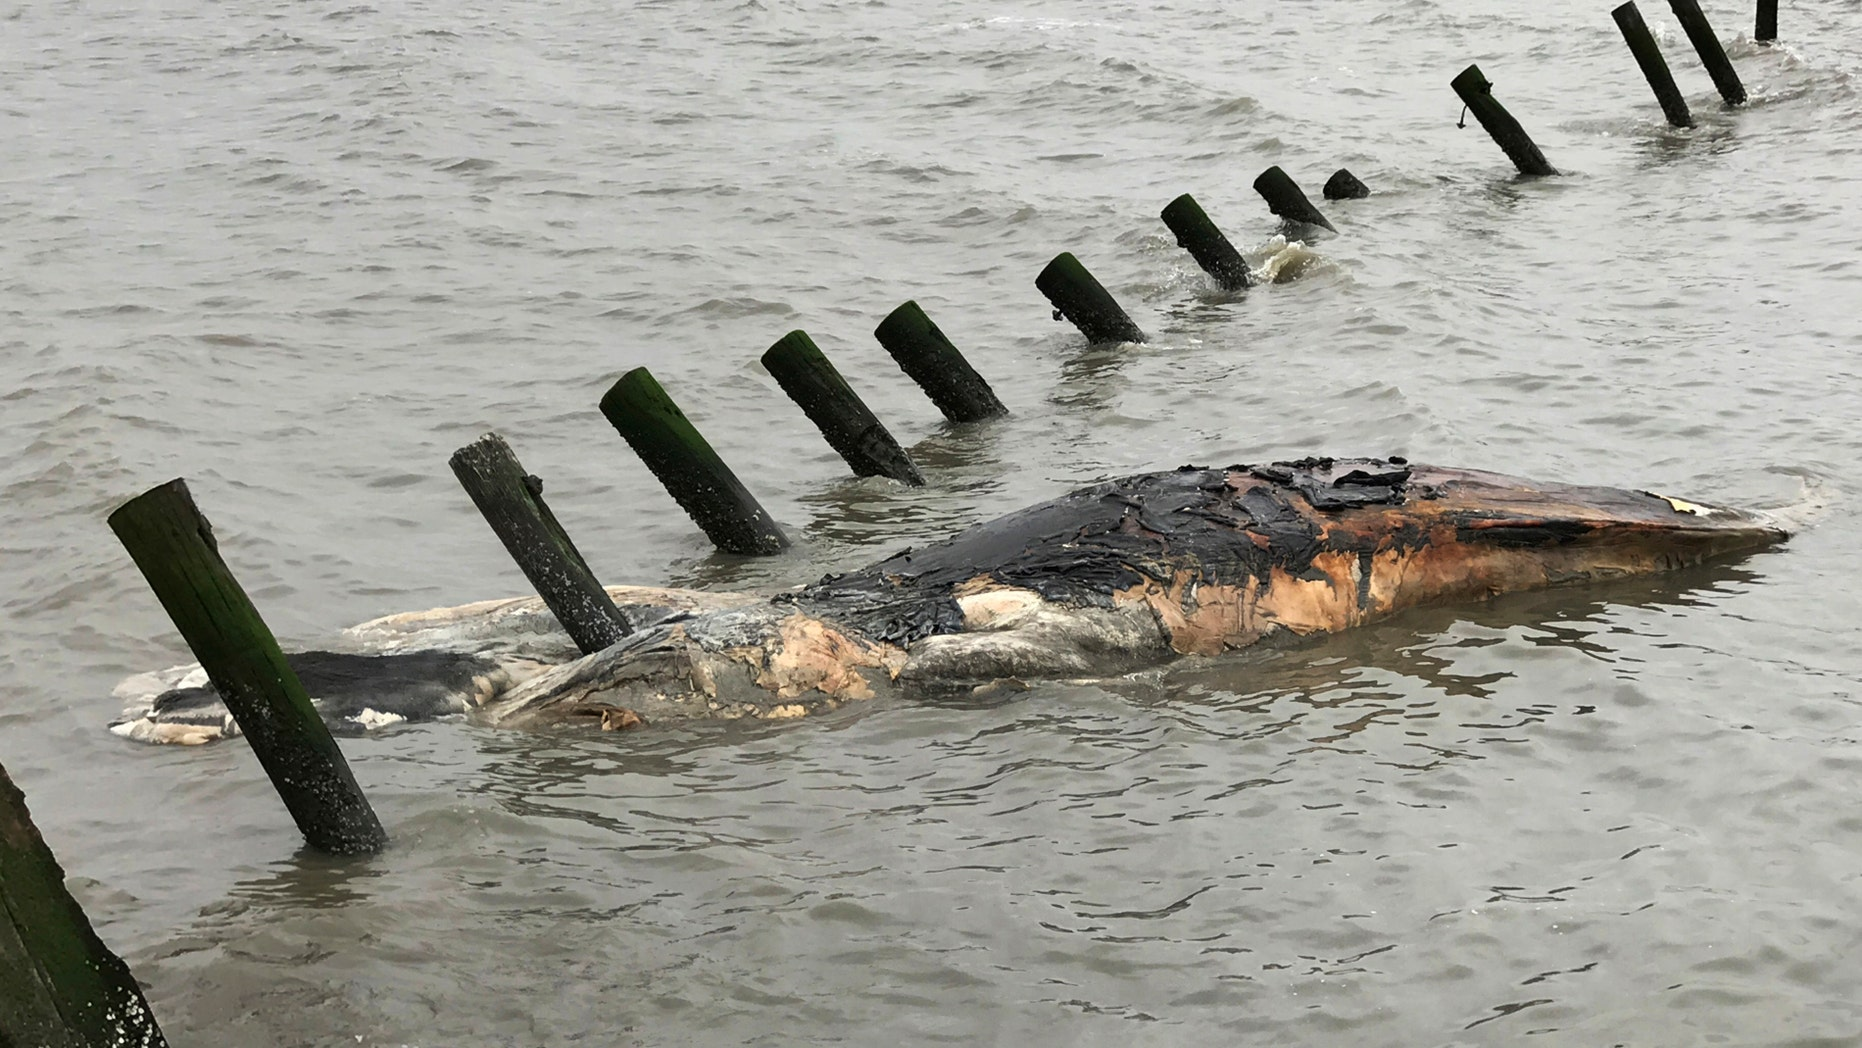 This April 24, 2017 photo provided by MERR Institute, Inc. shows a dead humpback whale at Port Mahon, Del. Federal officials said humpback whales have been dying in unusually large numbers along the Atlantic Coast.